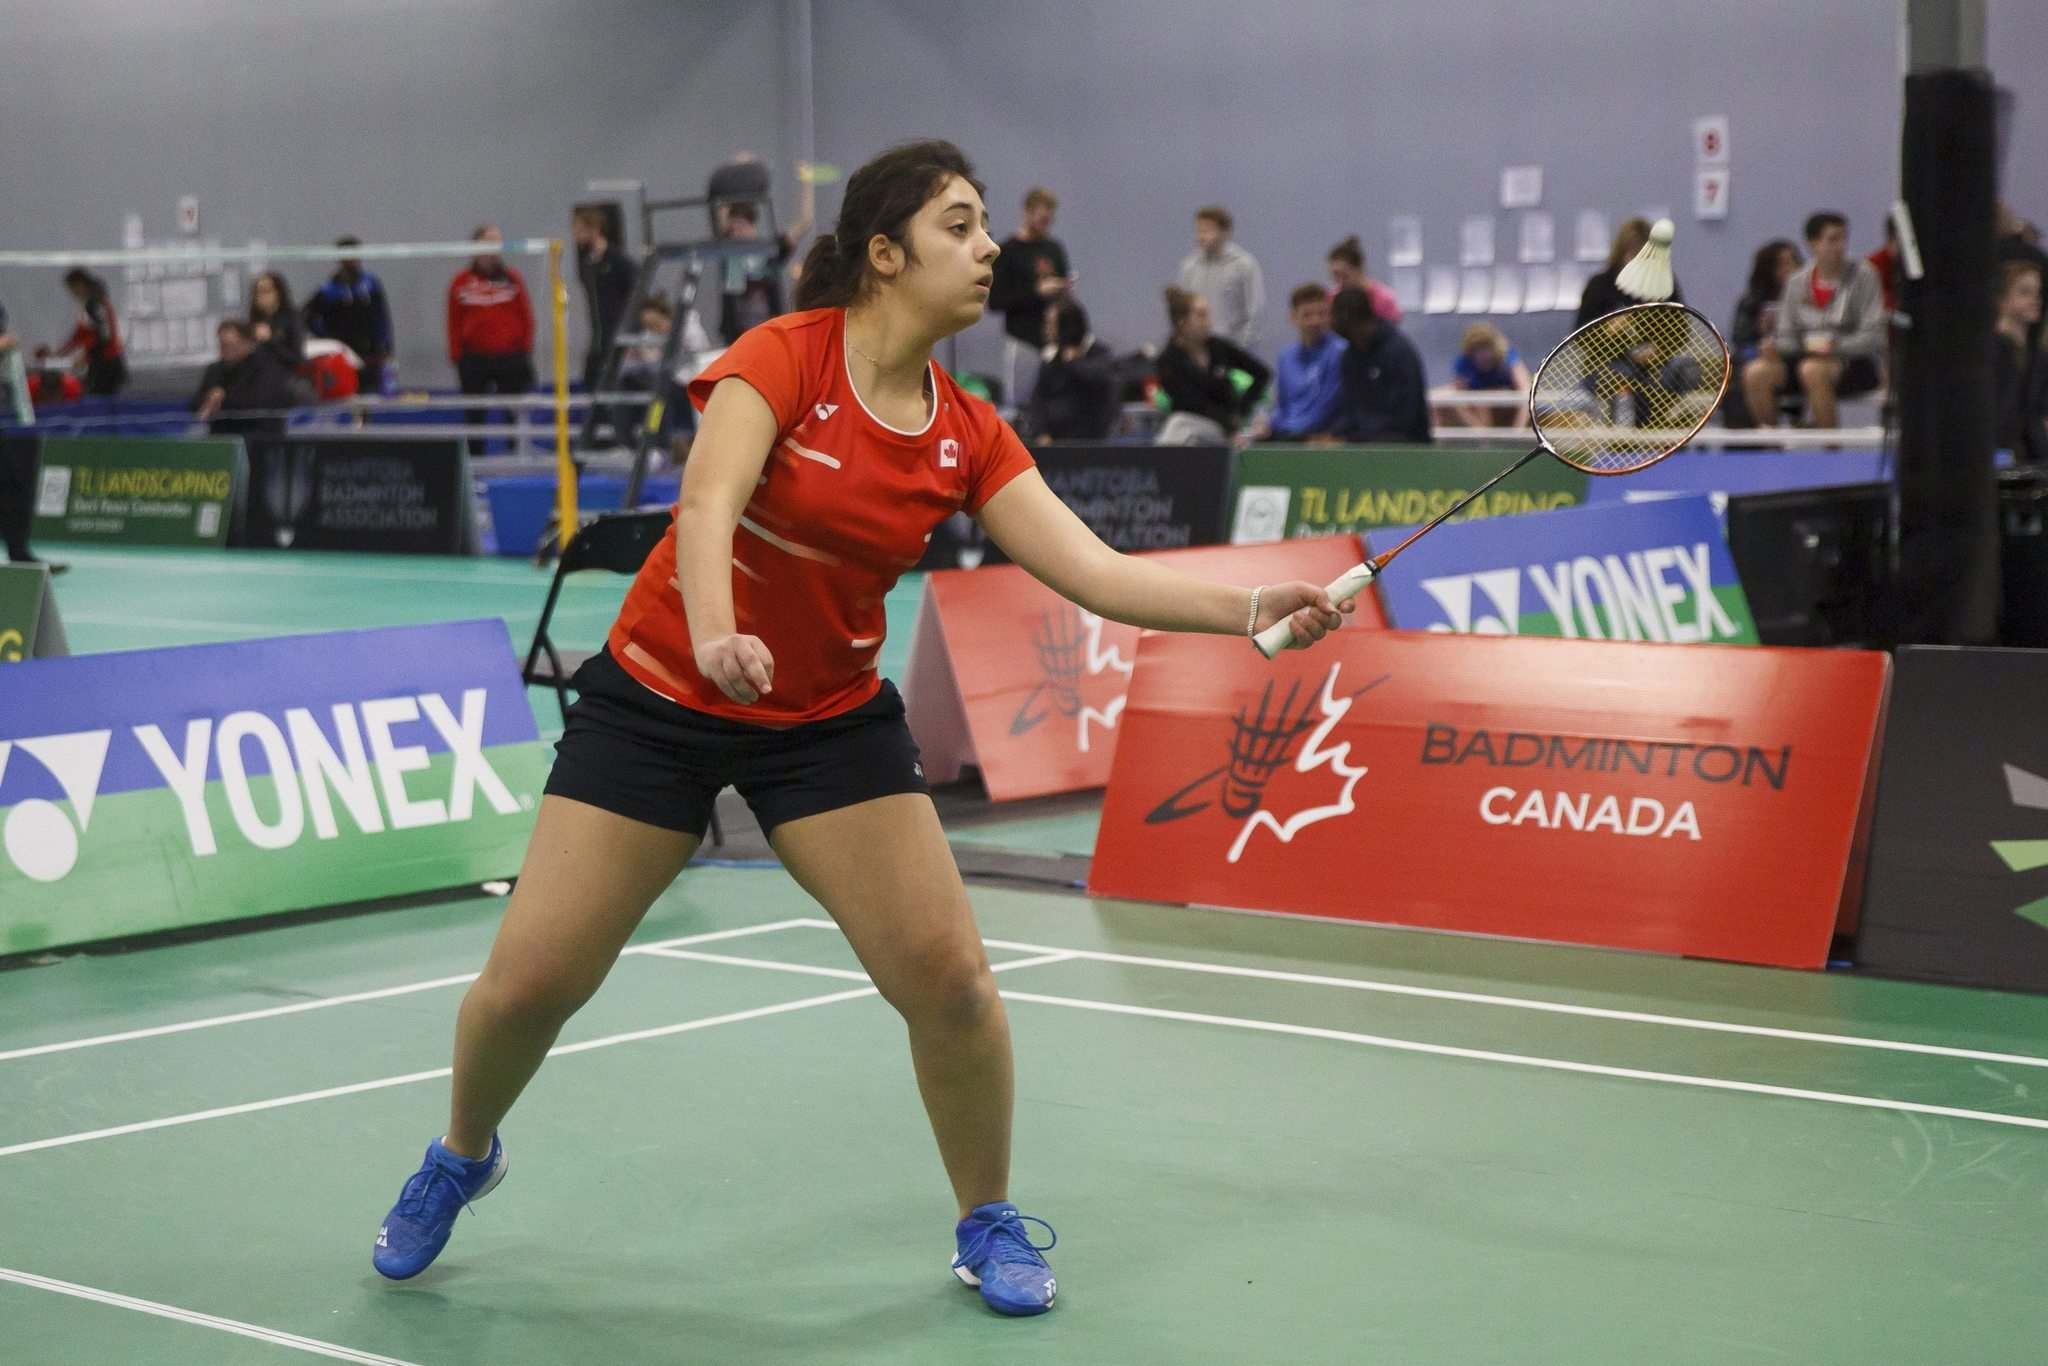 Meier is currently ranked No. 11 in the world in women's singles and No. 12 in mixed doubles with her partner Pascal Lapointe, who hails from Montreal. (Mike Deal / Winnipeg Free Press)